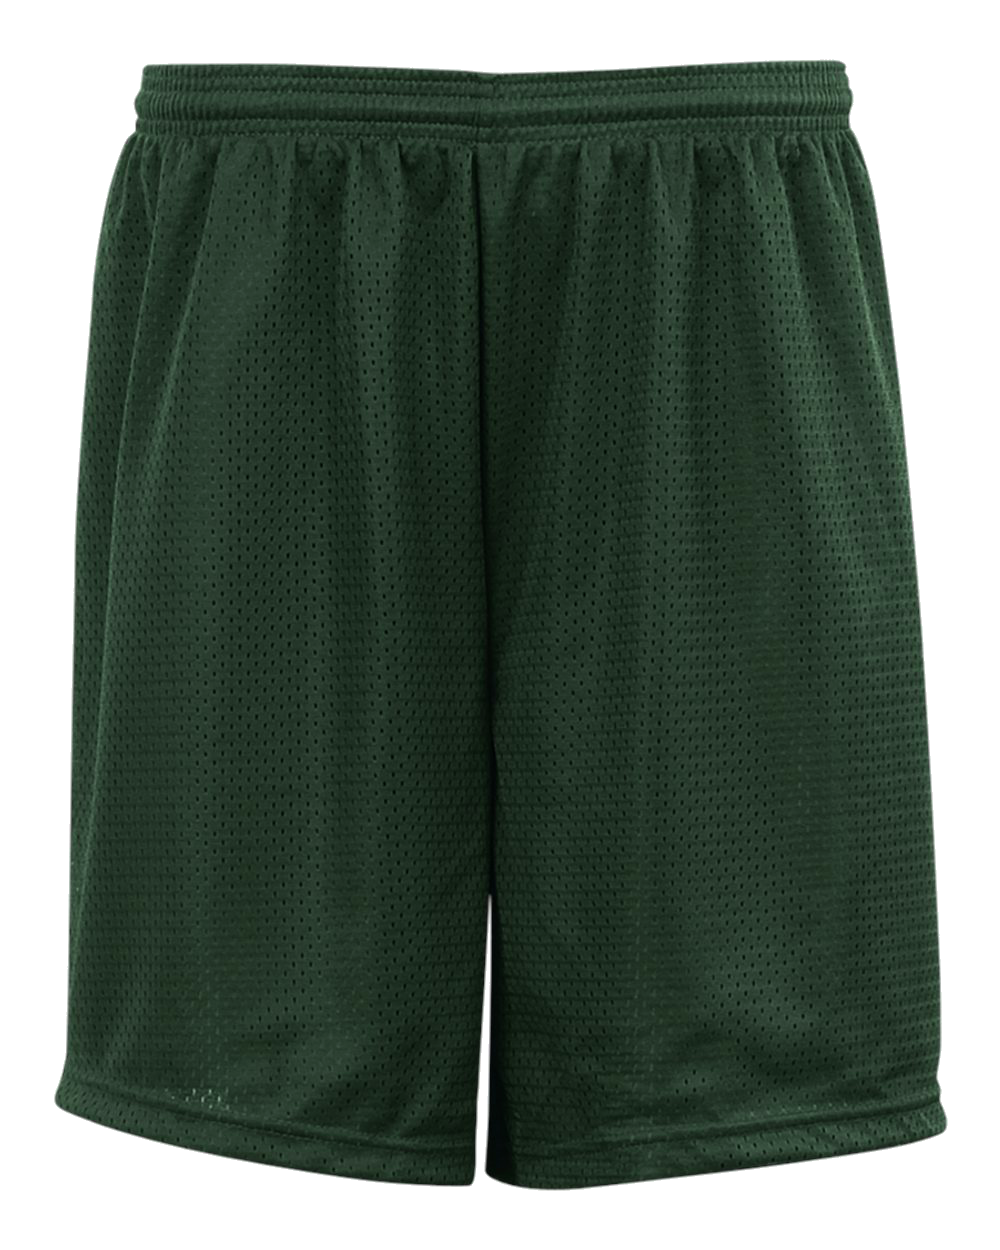 Mesh/Tricot 6 Inch Youth Short - Forest